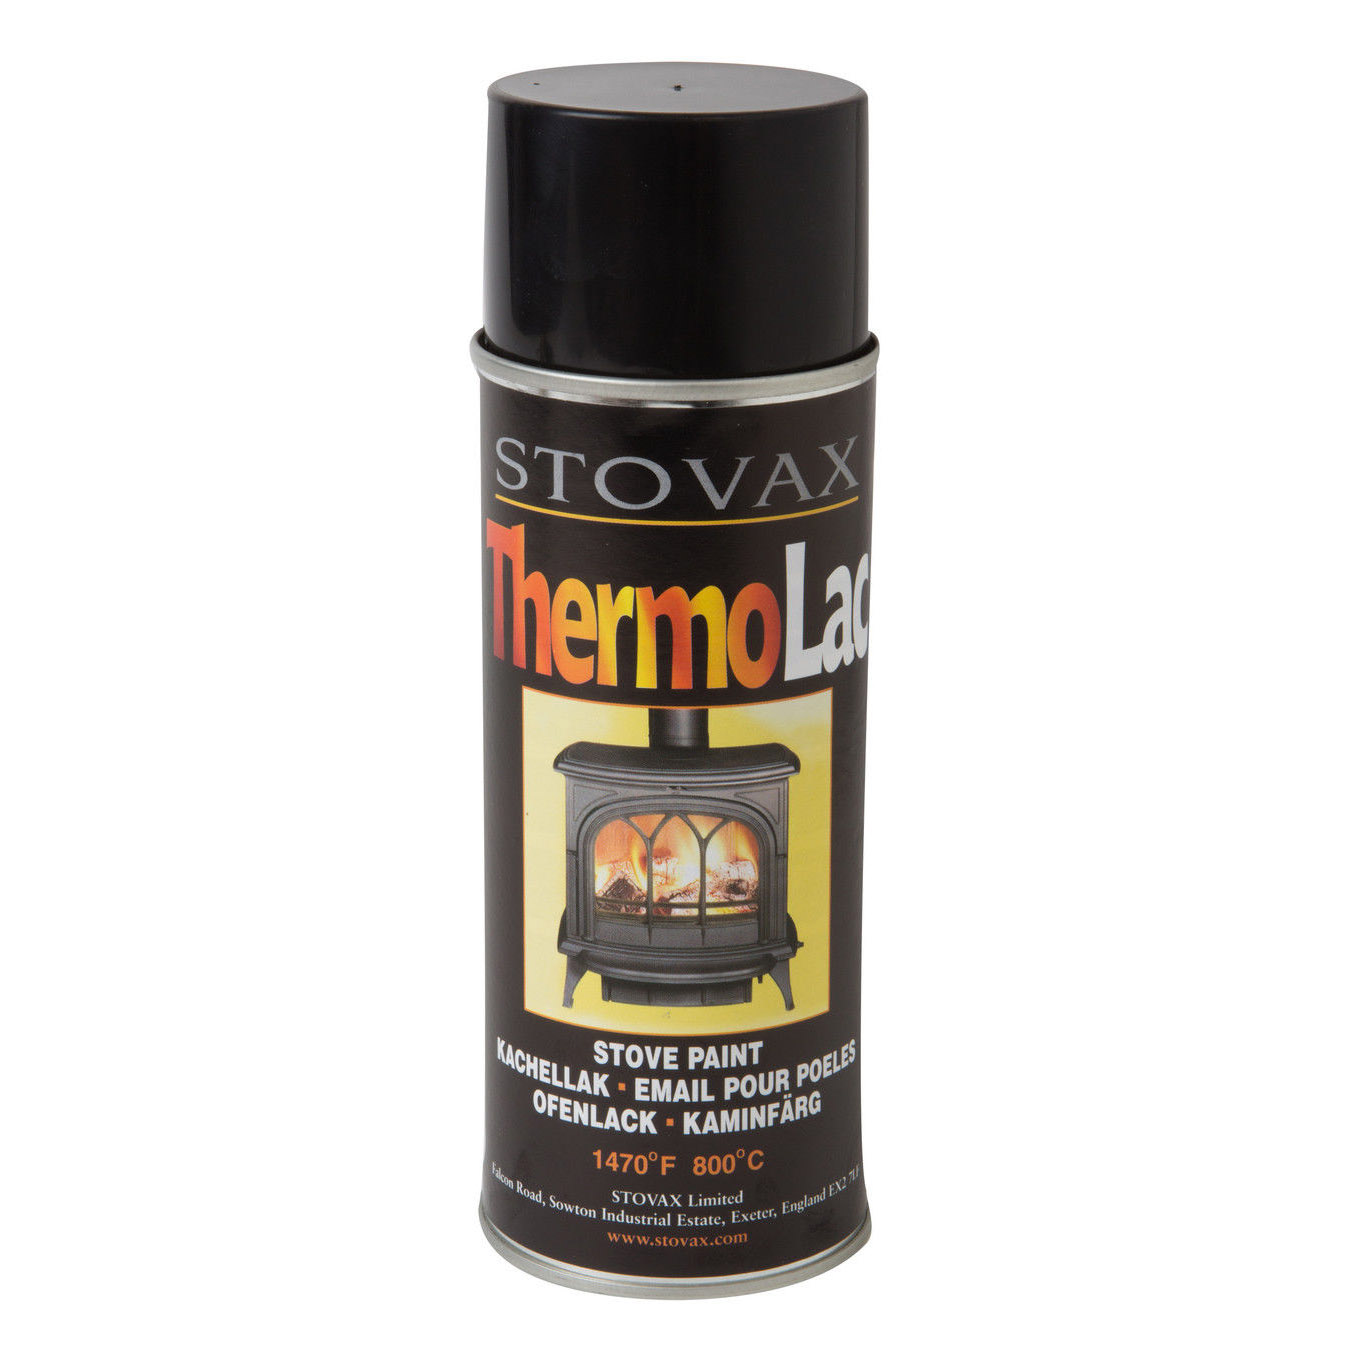 Stovax thermolac spray paint matt black suffolk stoves Black spray paint